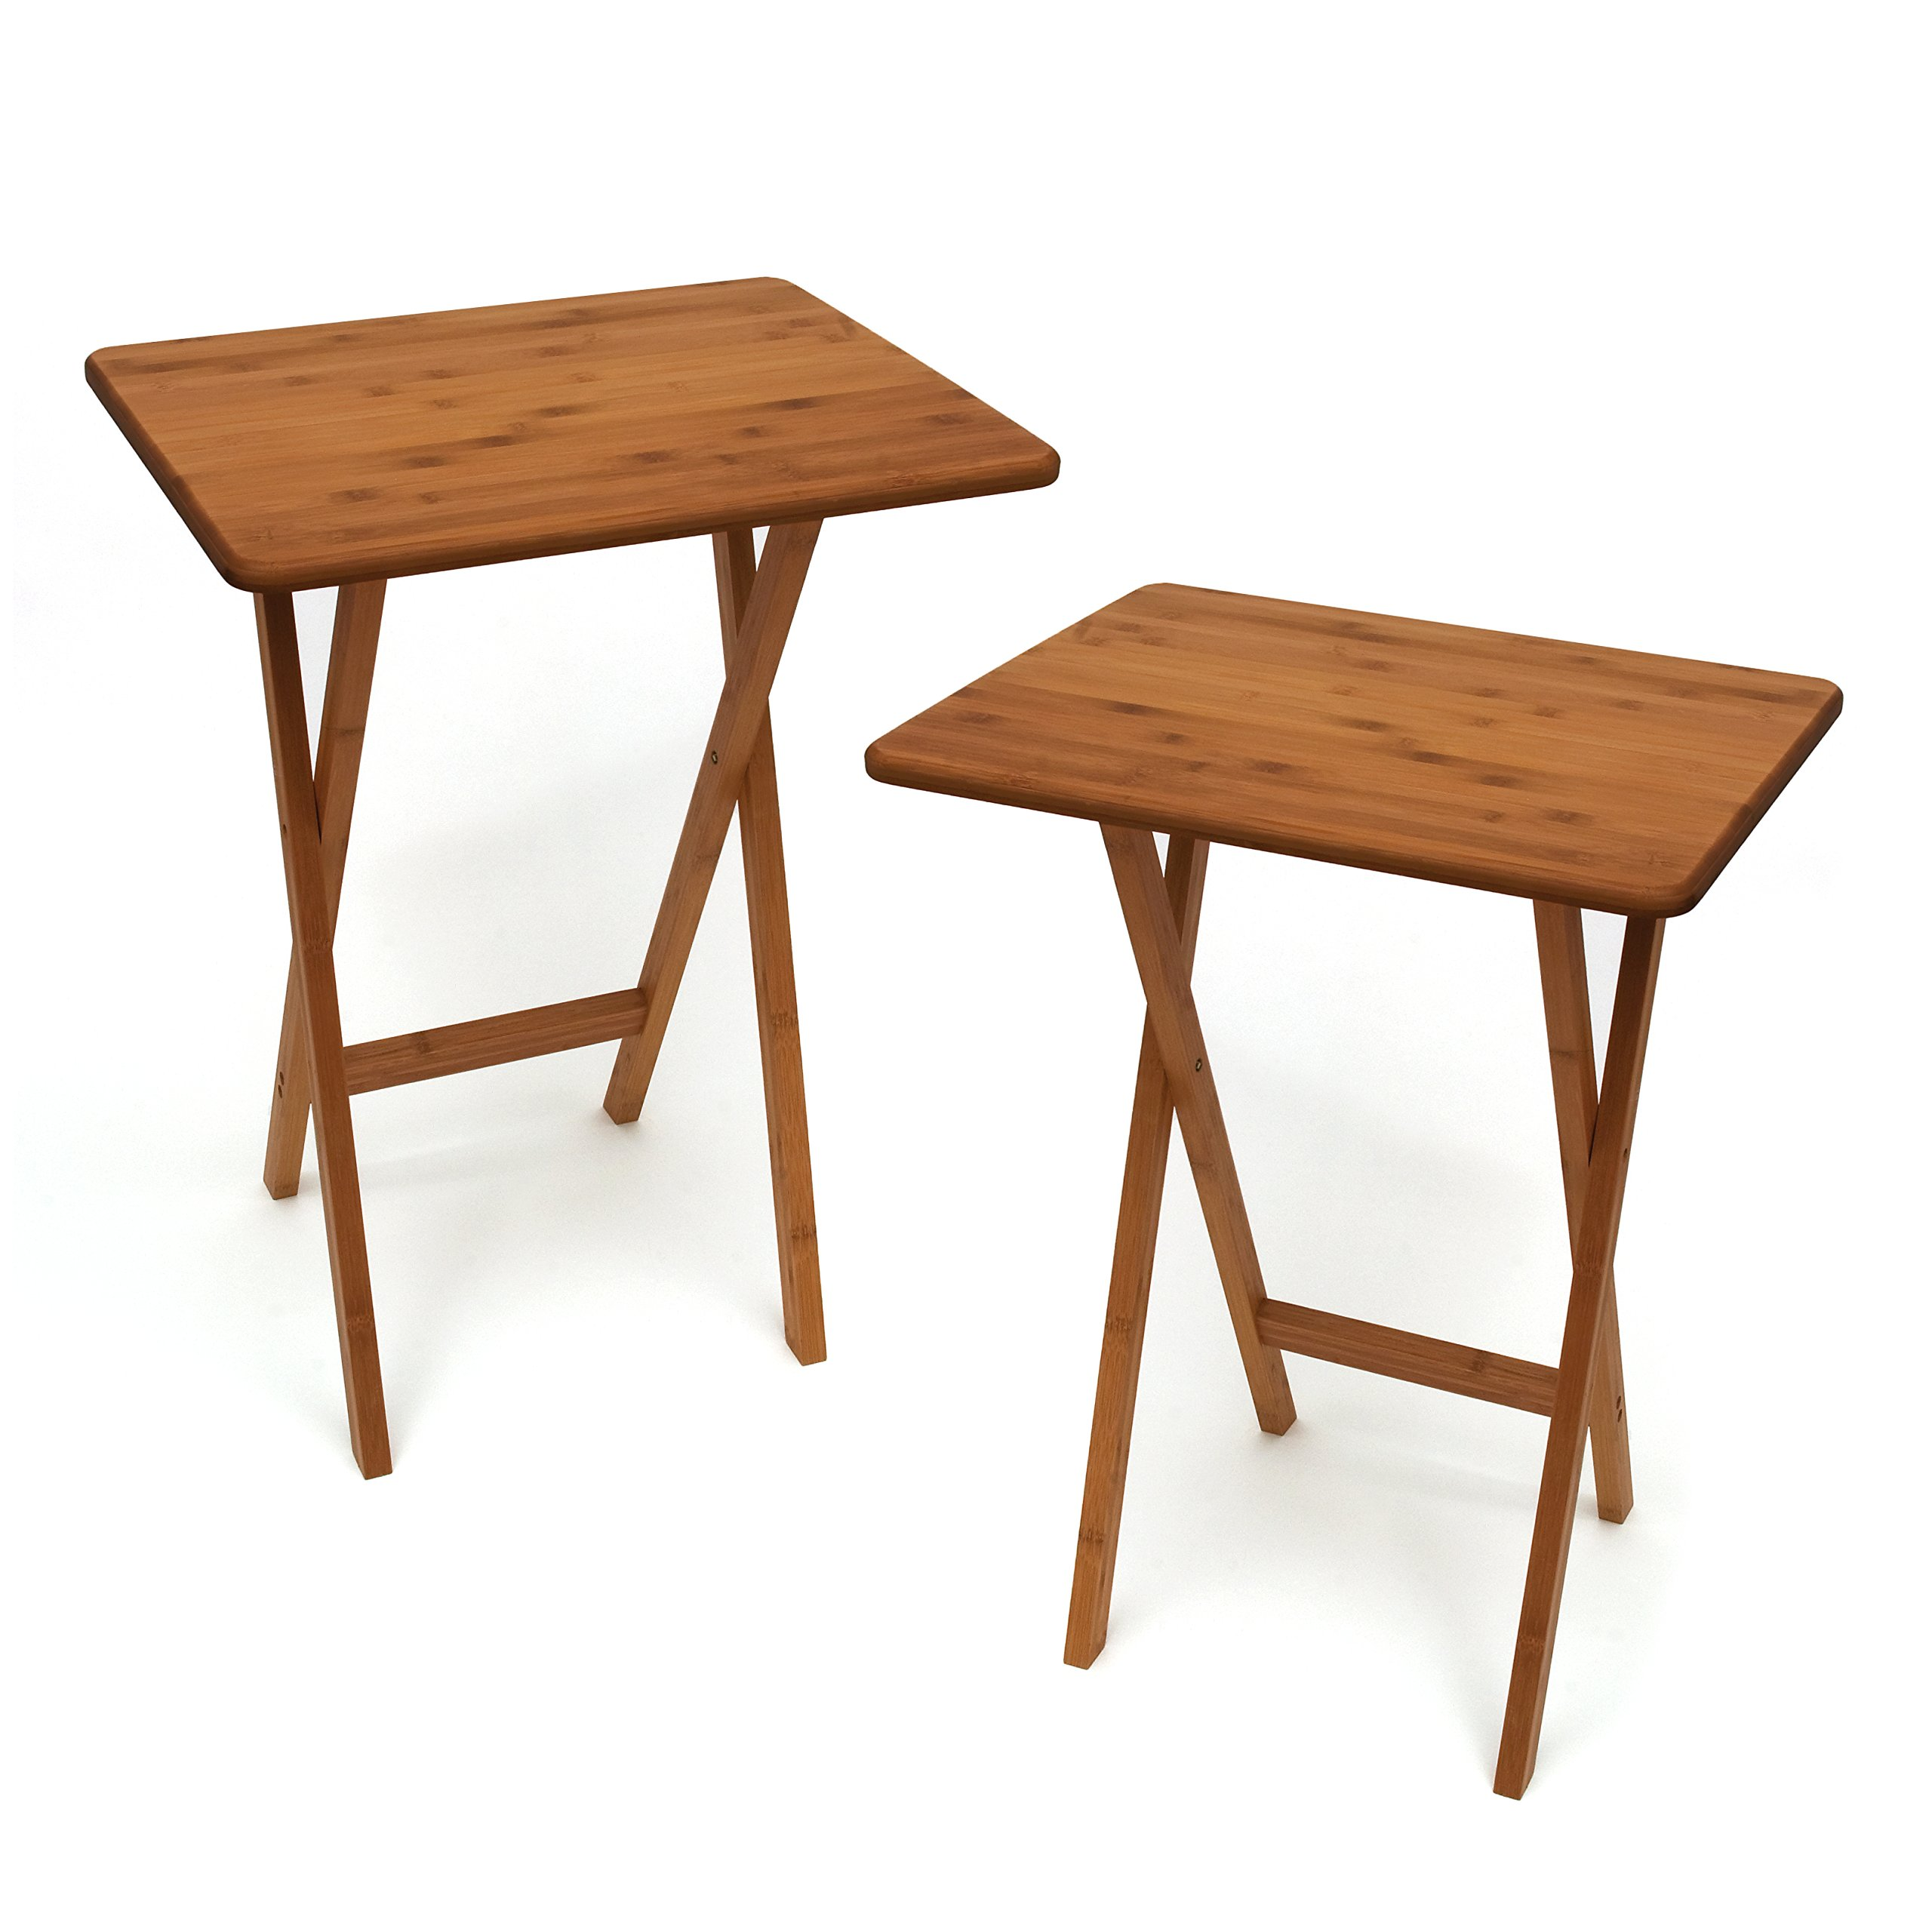 Lipper International 803-2 Bamboo Wood Rectangular Snack Tables, 18.75'' x 15'' x 24.75'', Set of 2 Tables